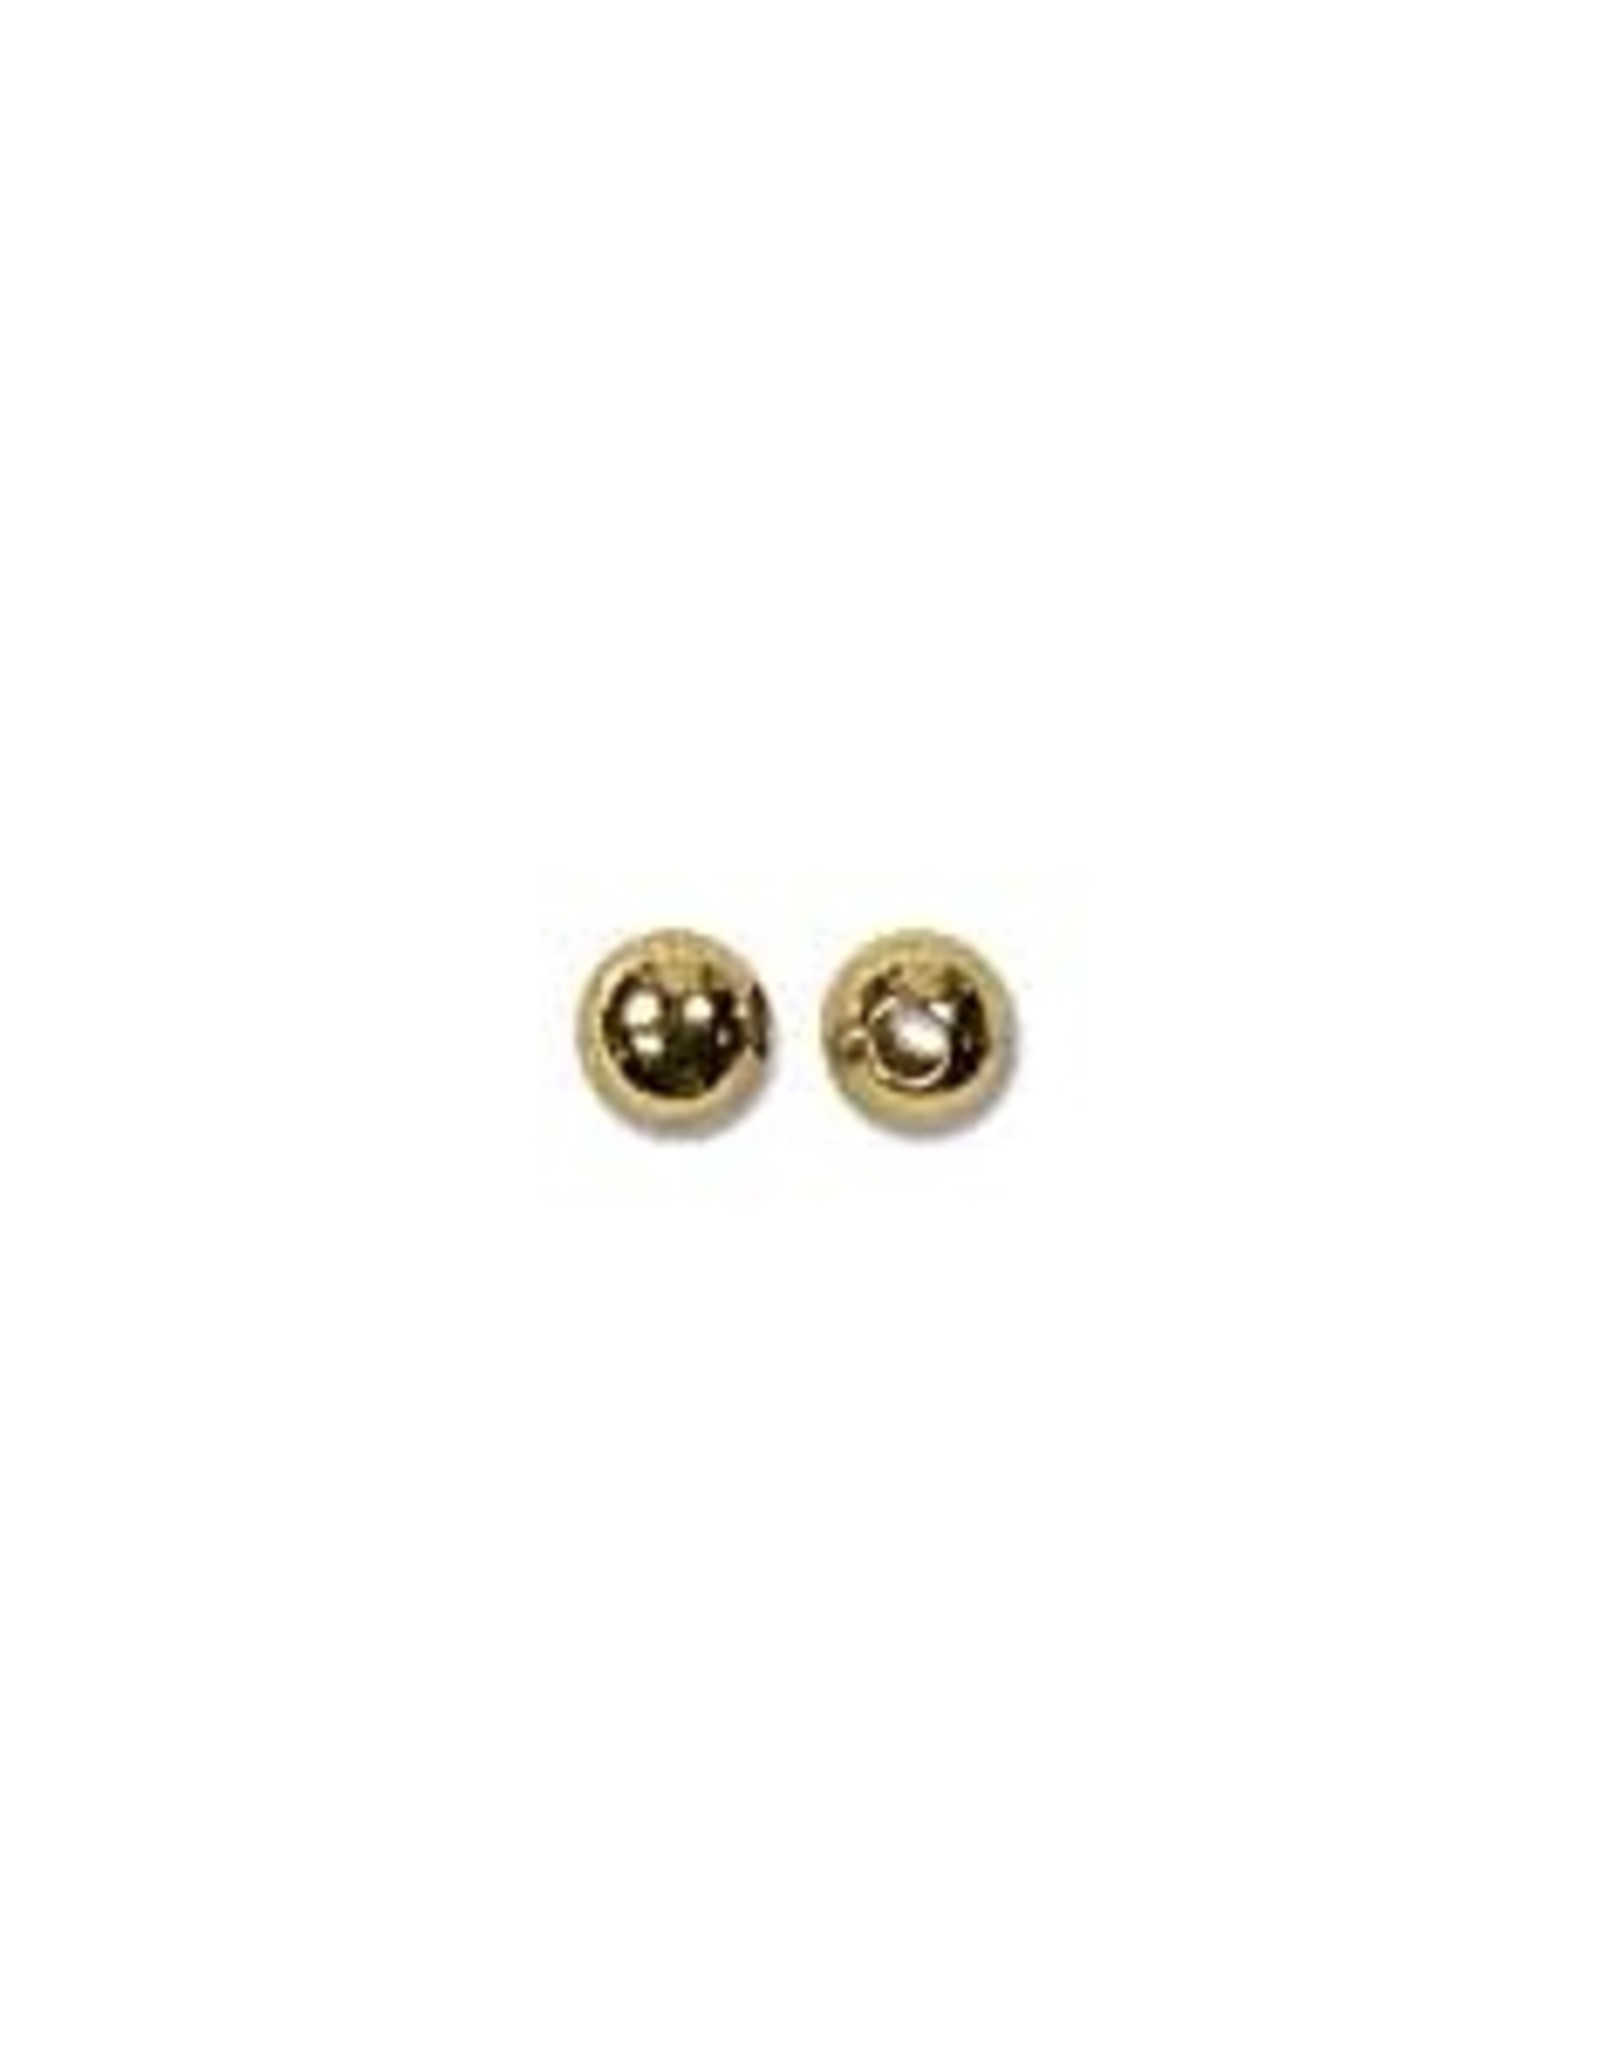 2.4mm Round Bead Gold Plated qty 144